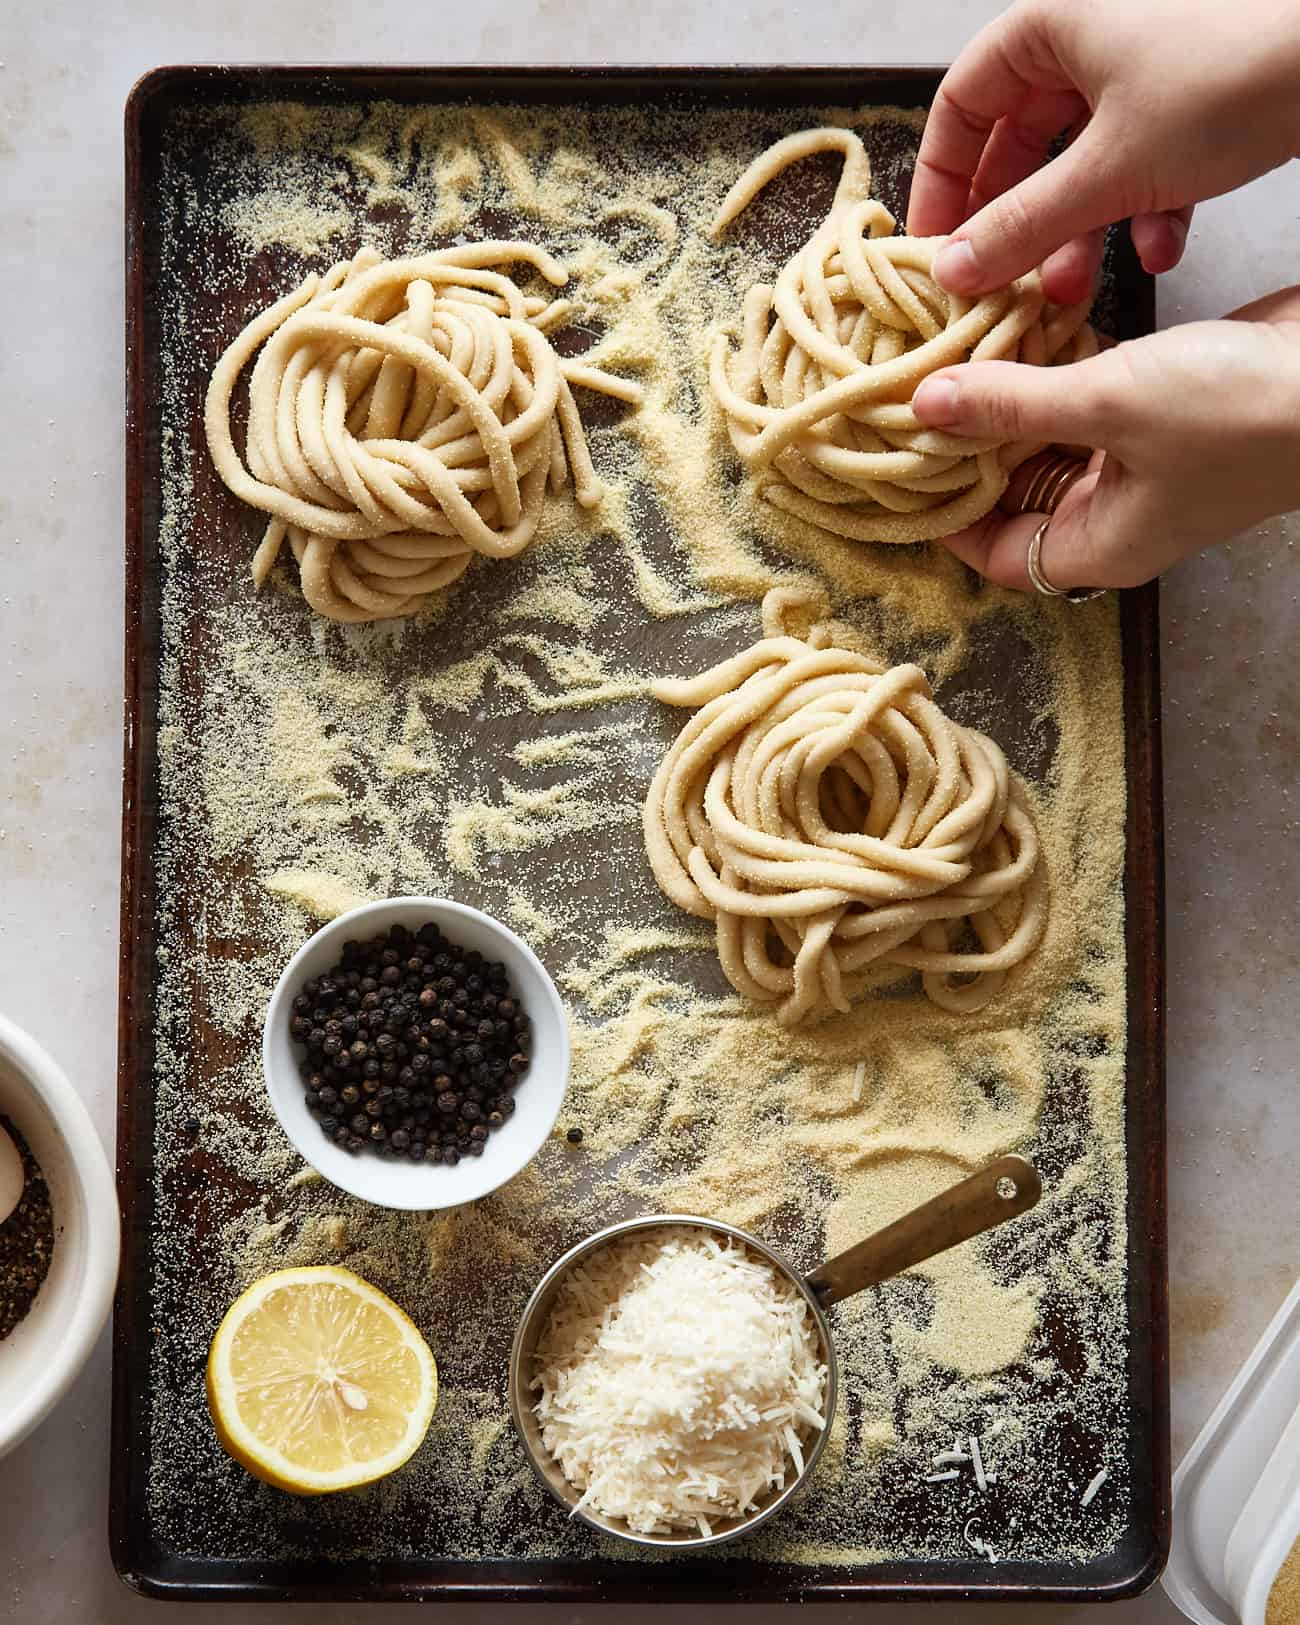 nests of pici dough on a tray with ingredients for cacio e pepe